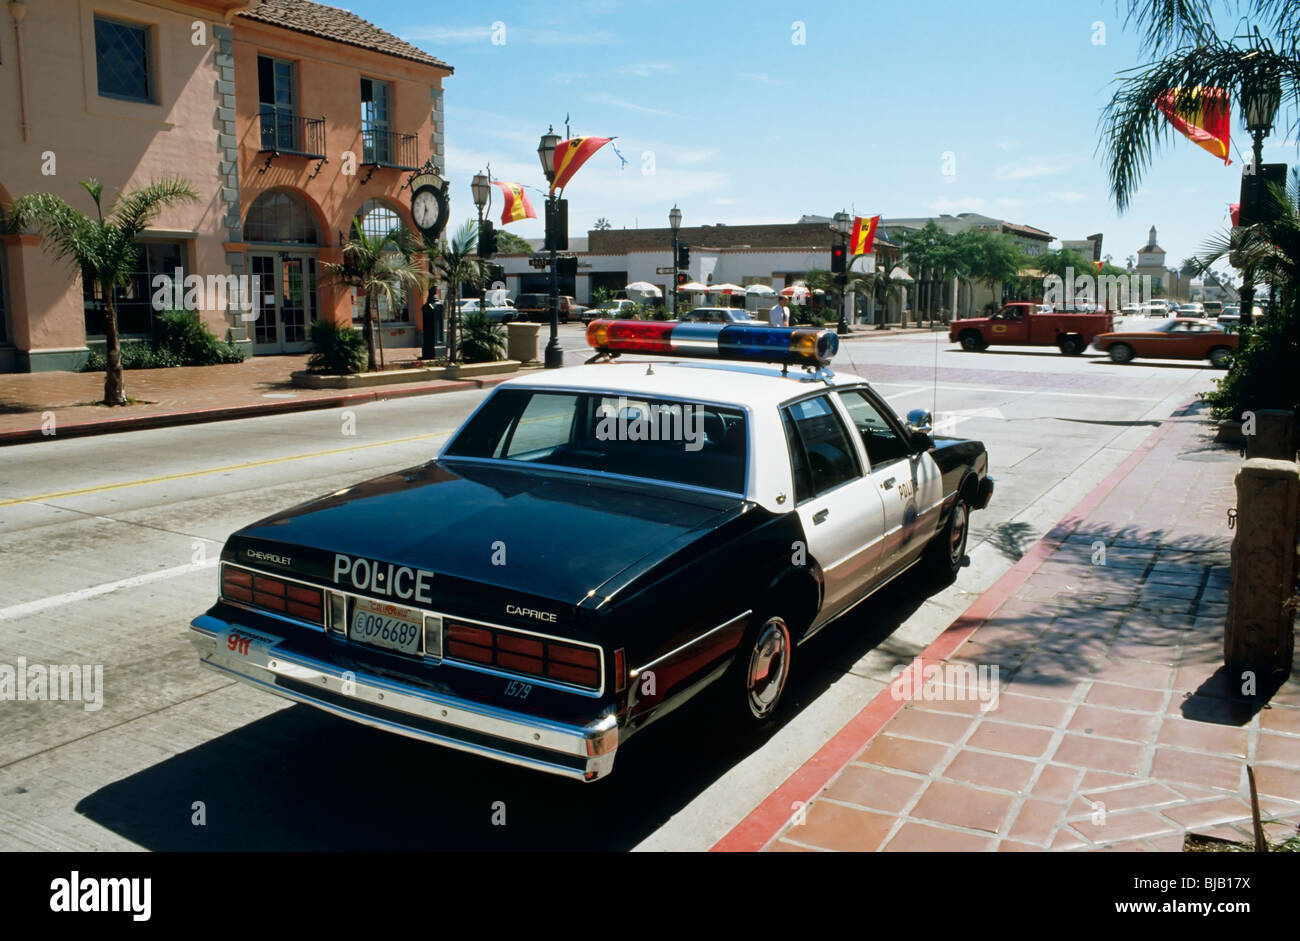 chevrolet caprice high resolution stock photography and images alamy https www alamy com stock photo chevrolet caprice police car 28516654 html